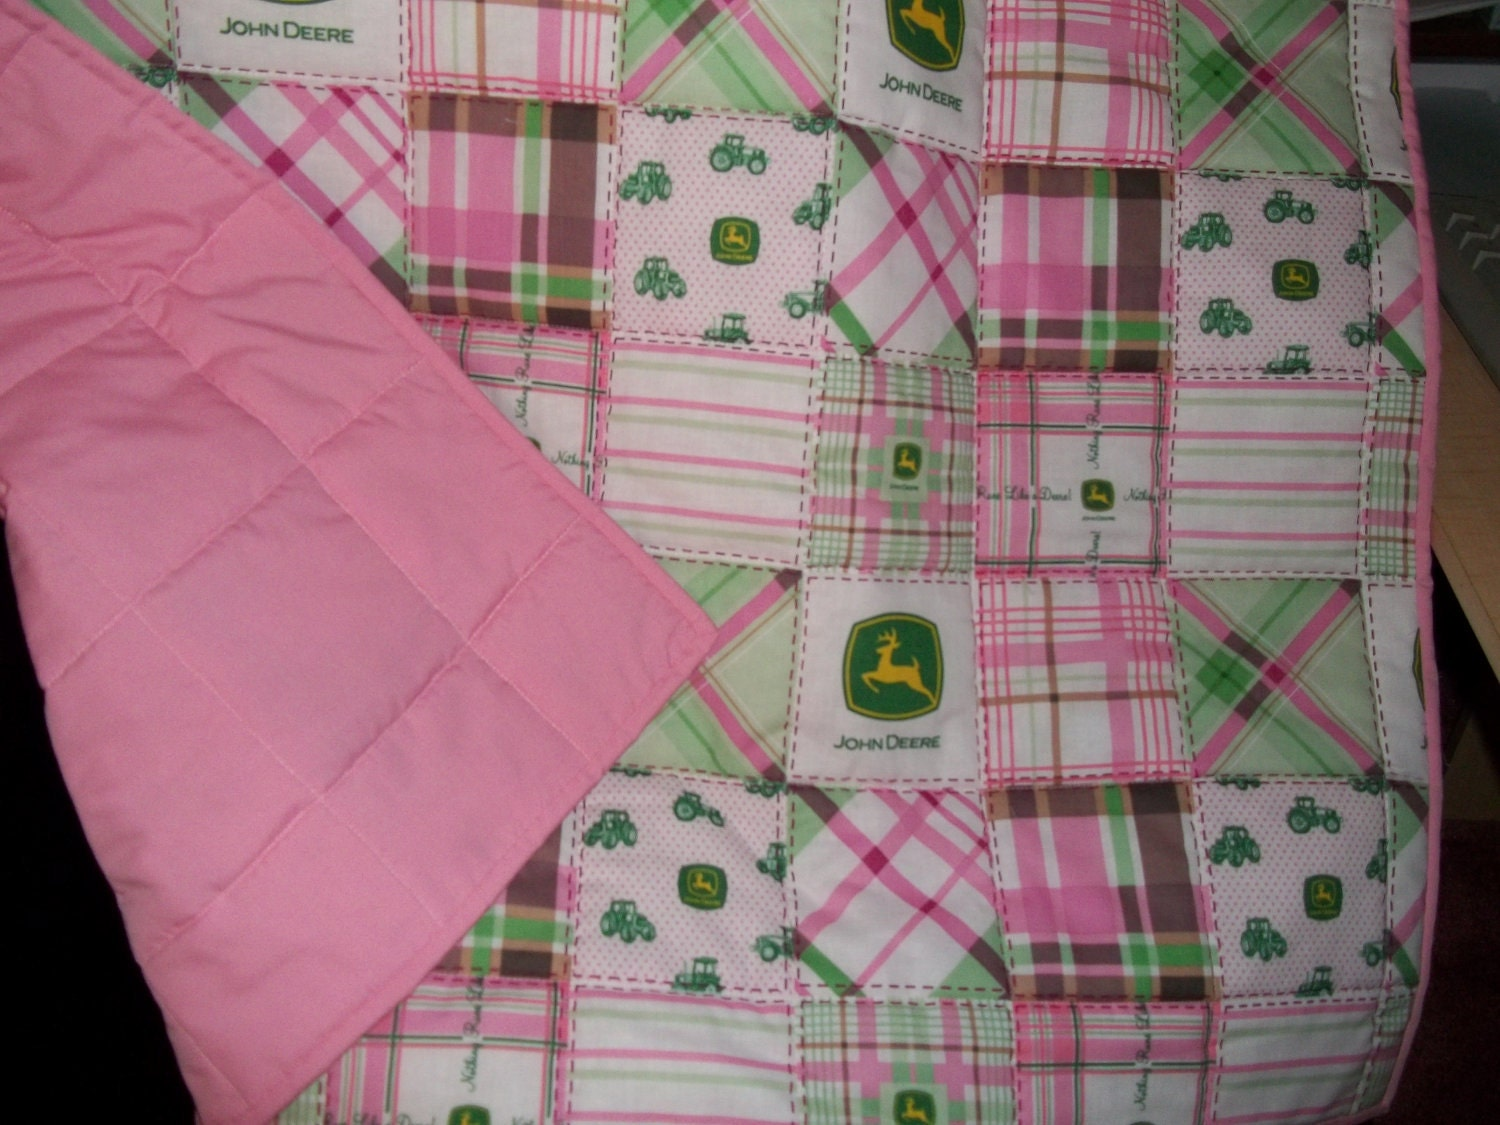 John Deere Bedding Pink/Green Homemade Baby Toddler Bed by ...